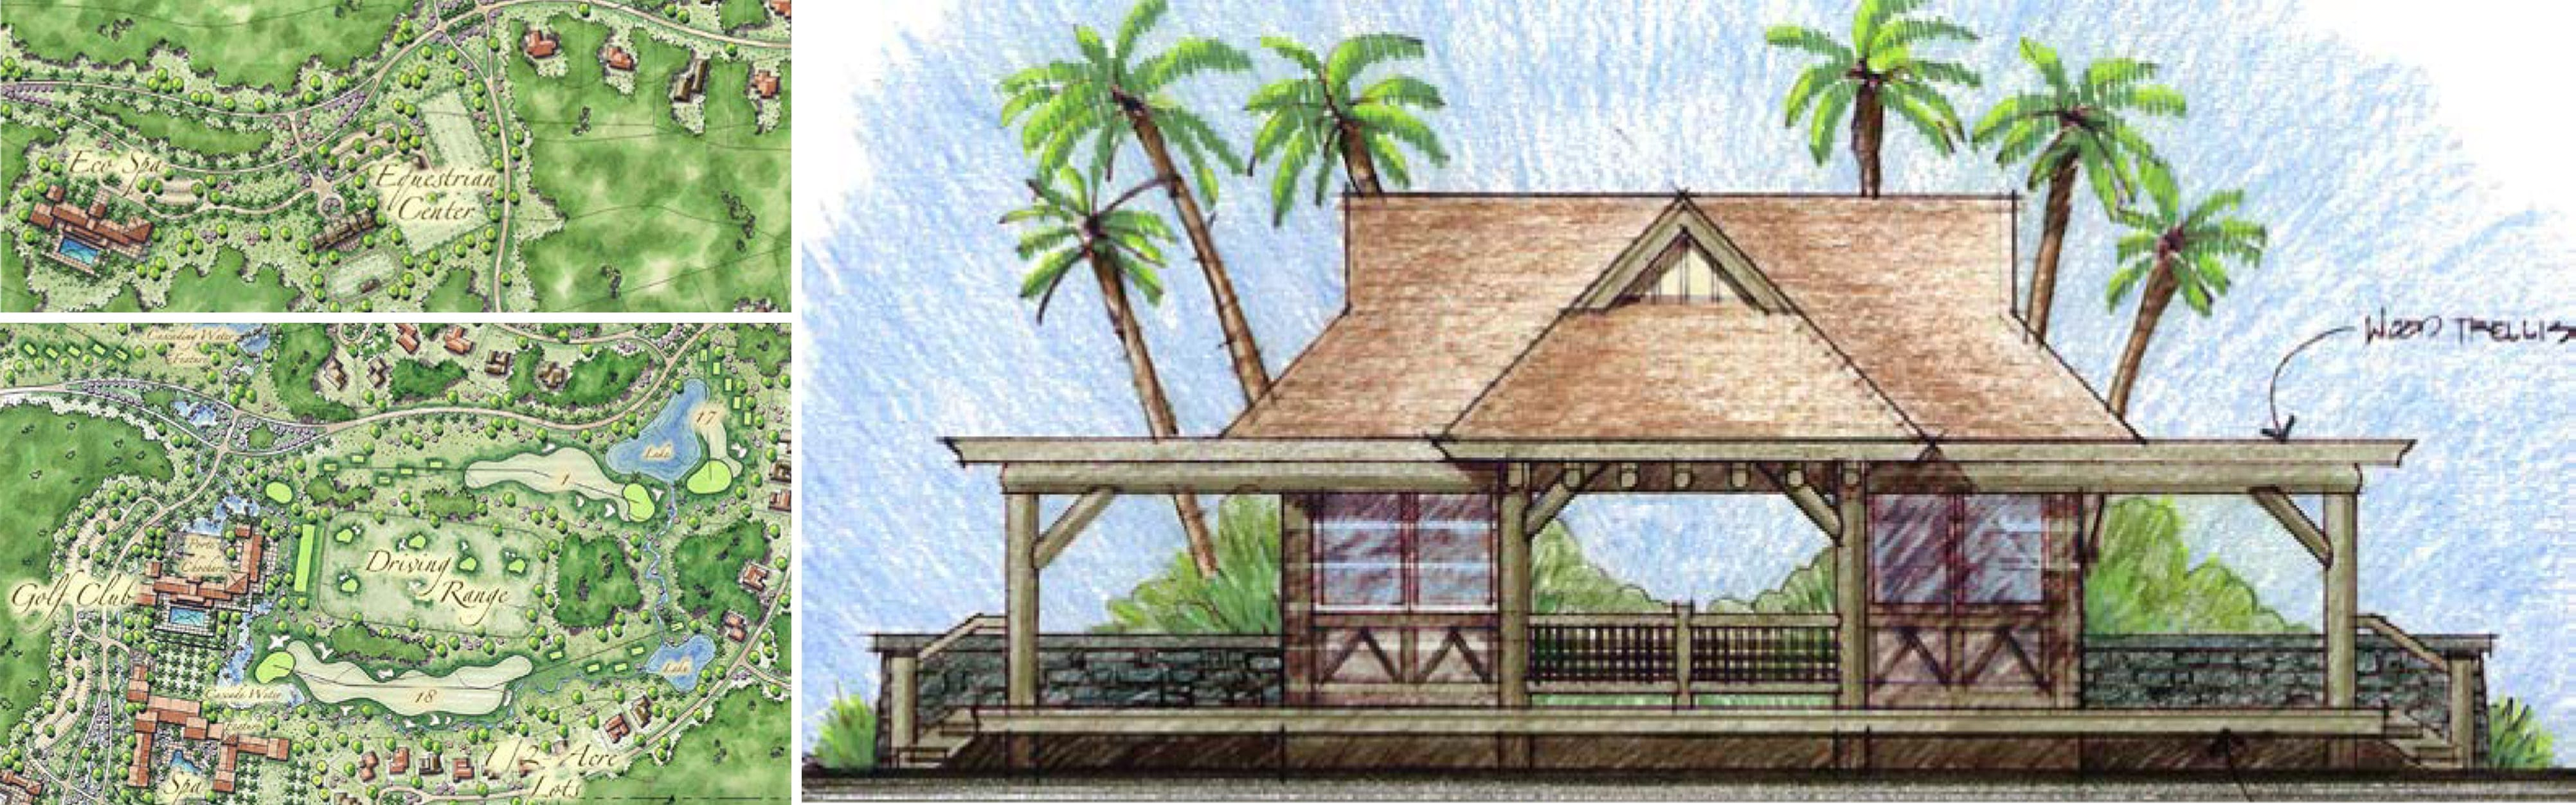 Master Planning Architecture Design In Captain Hook, Hawaii